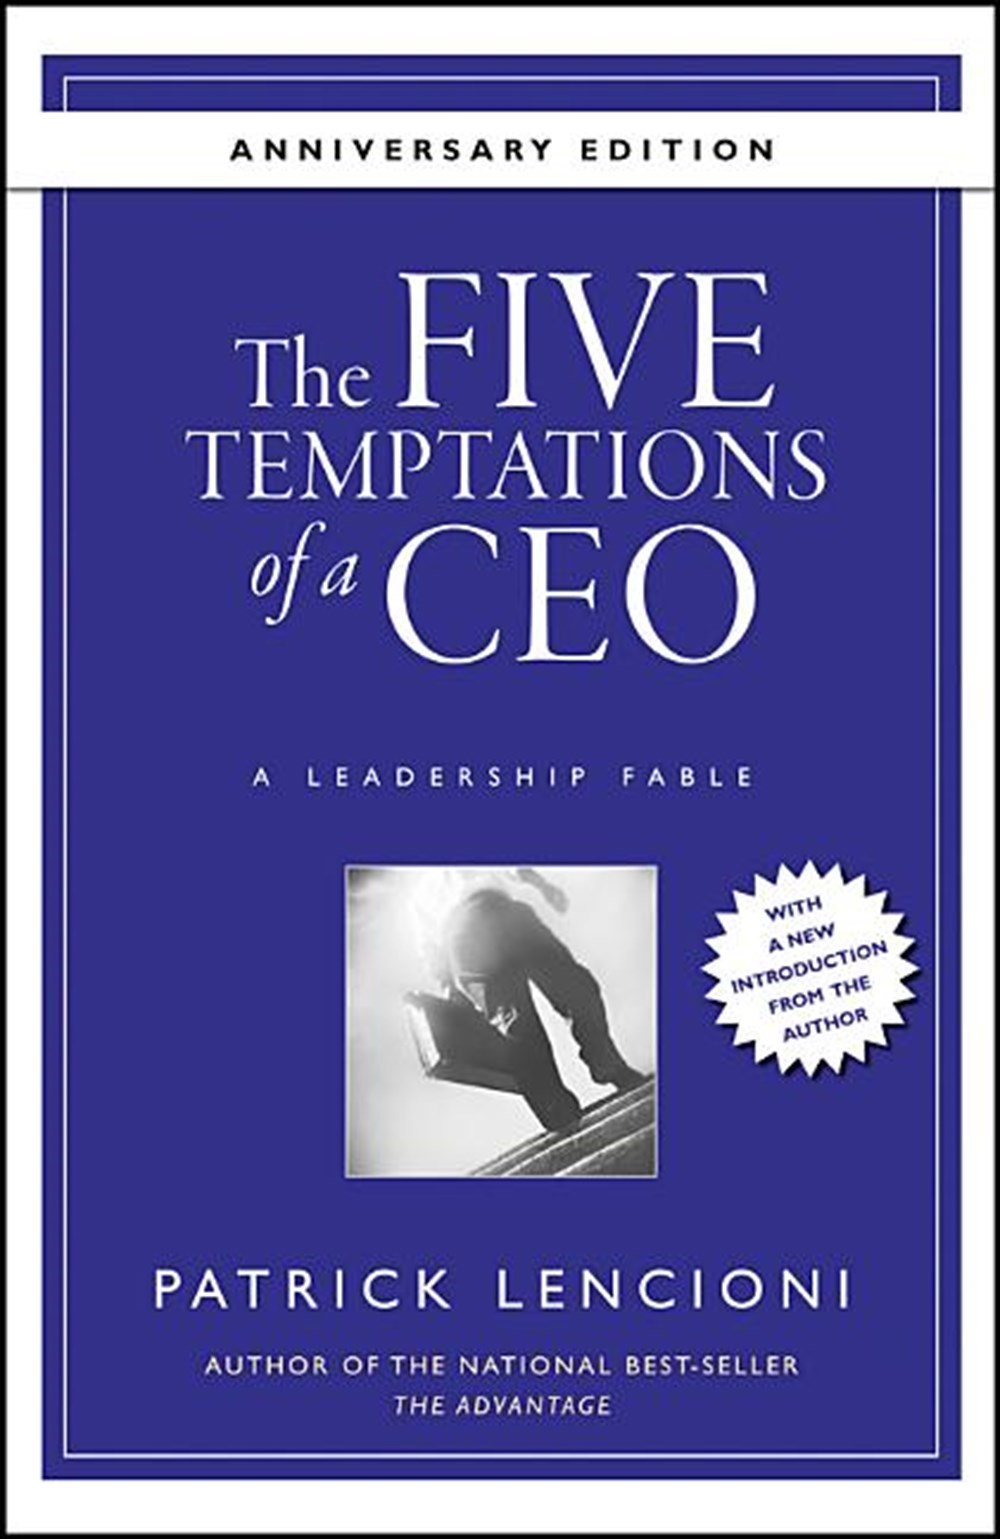 Five Temptations of a Ceo, 10th Anniversary Edition A Leadership Fable